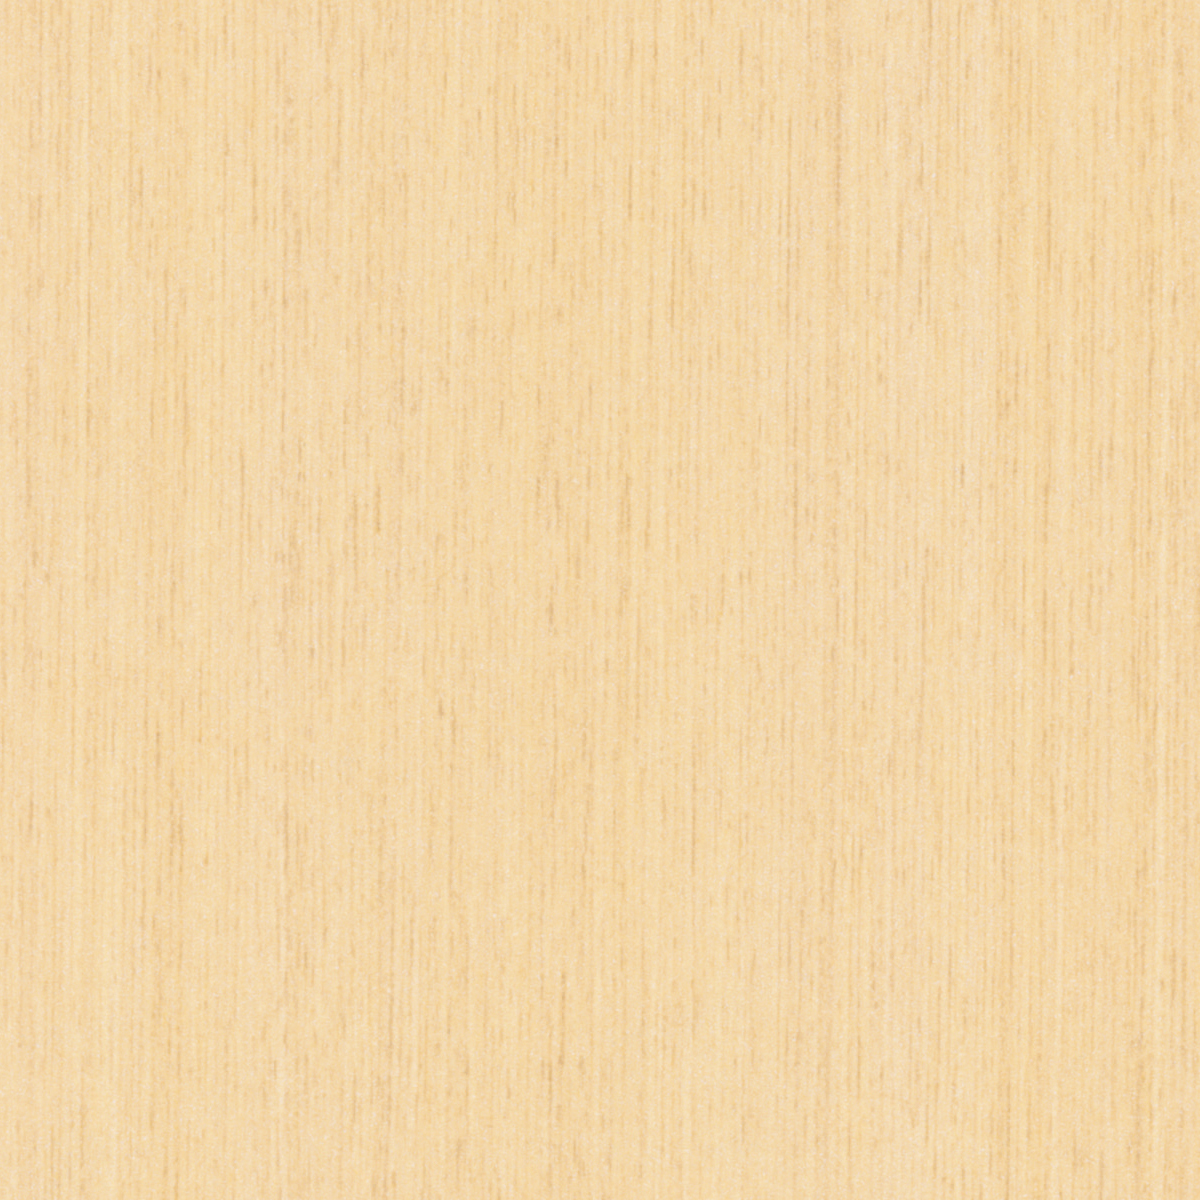 6925 Maple Woodline - Formica